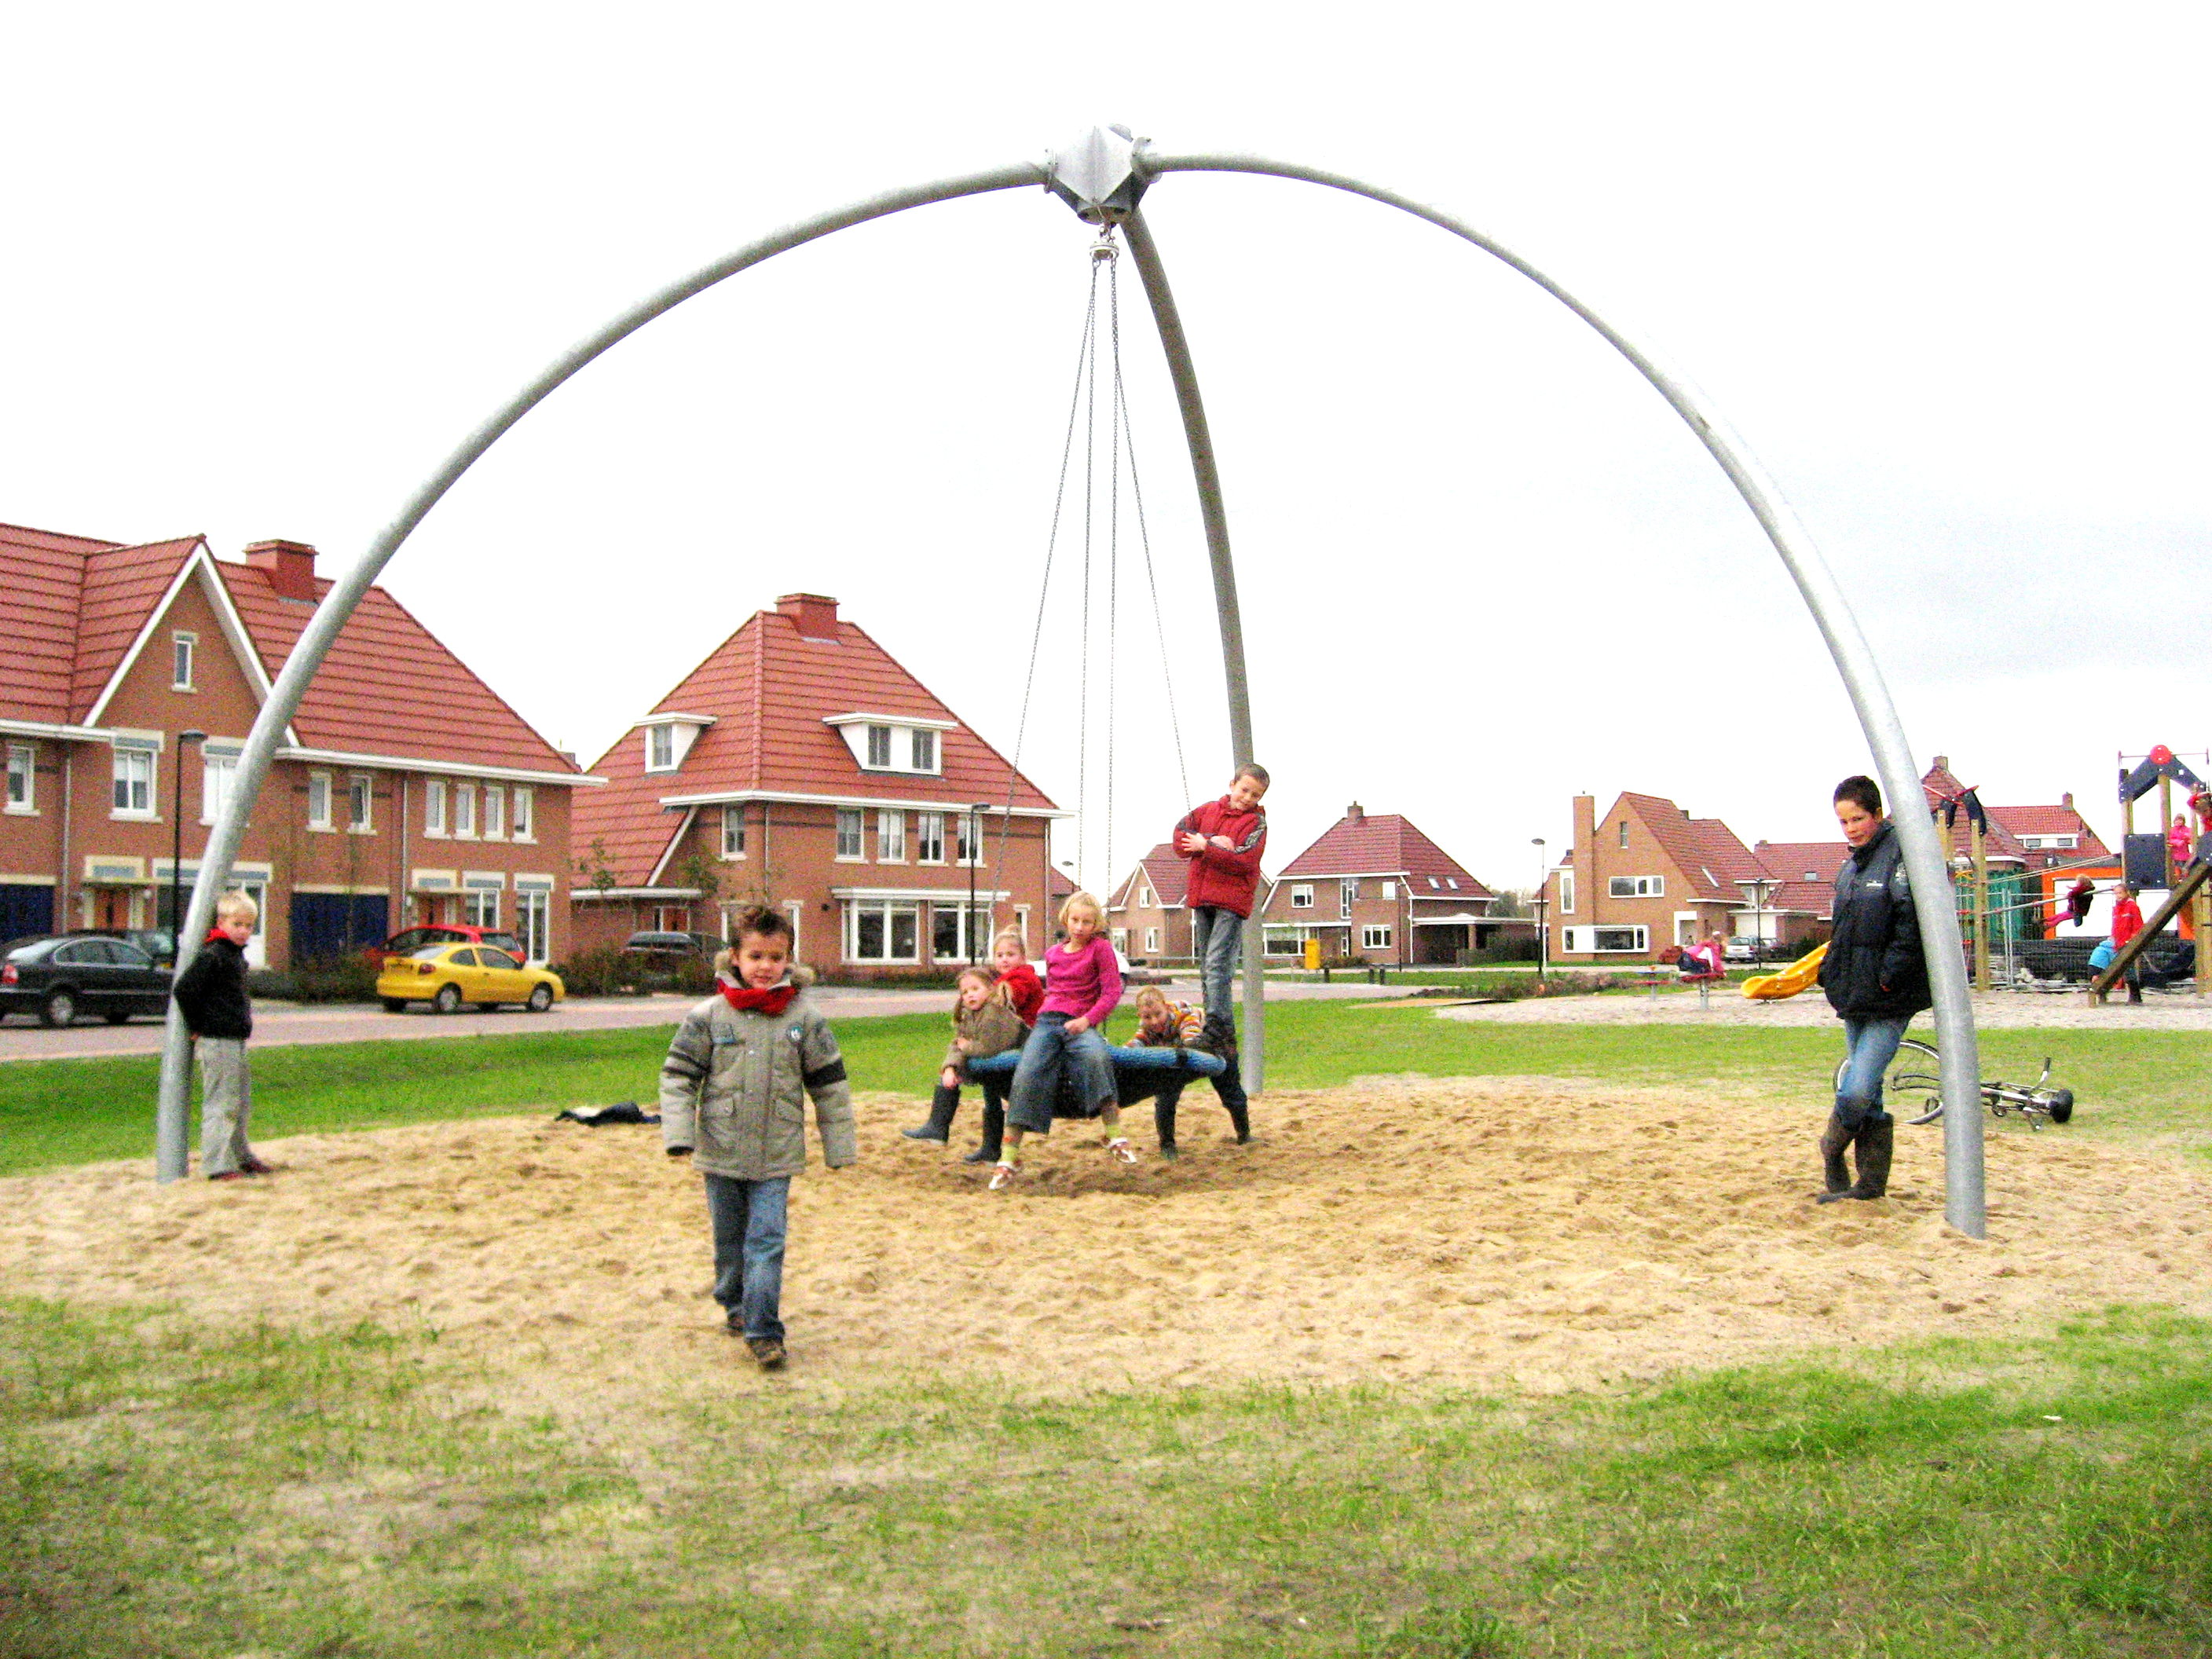 Urban Playground Swing